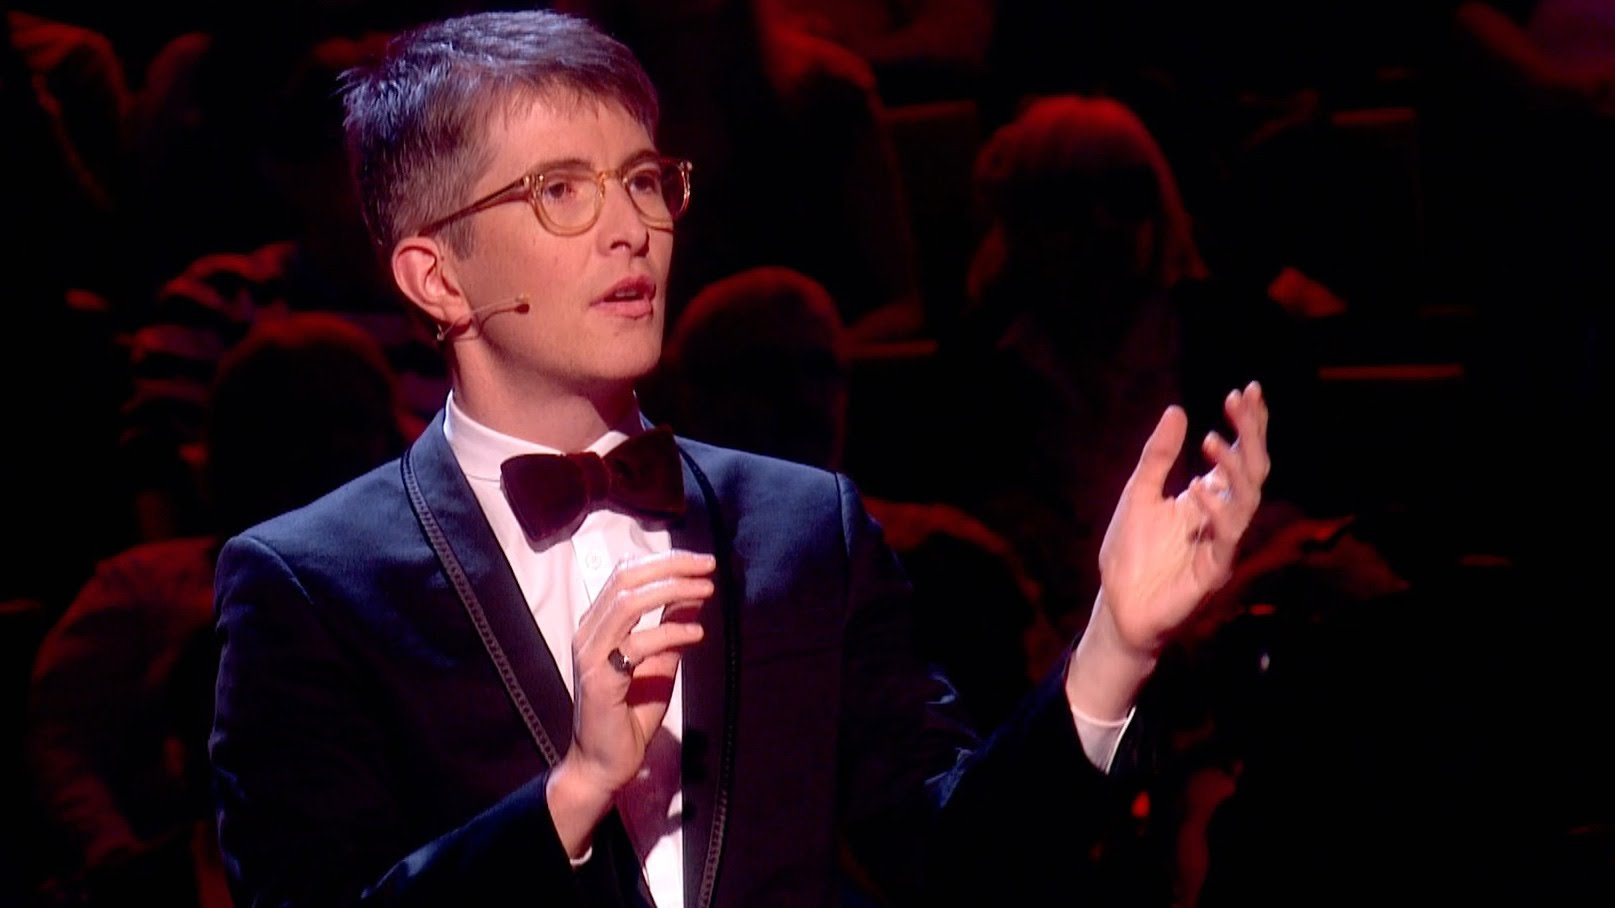 Gareth Malone's All Star Choir – Wake Me Up (Children in Need 2014)